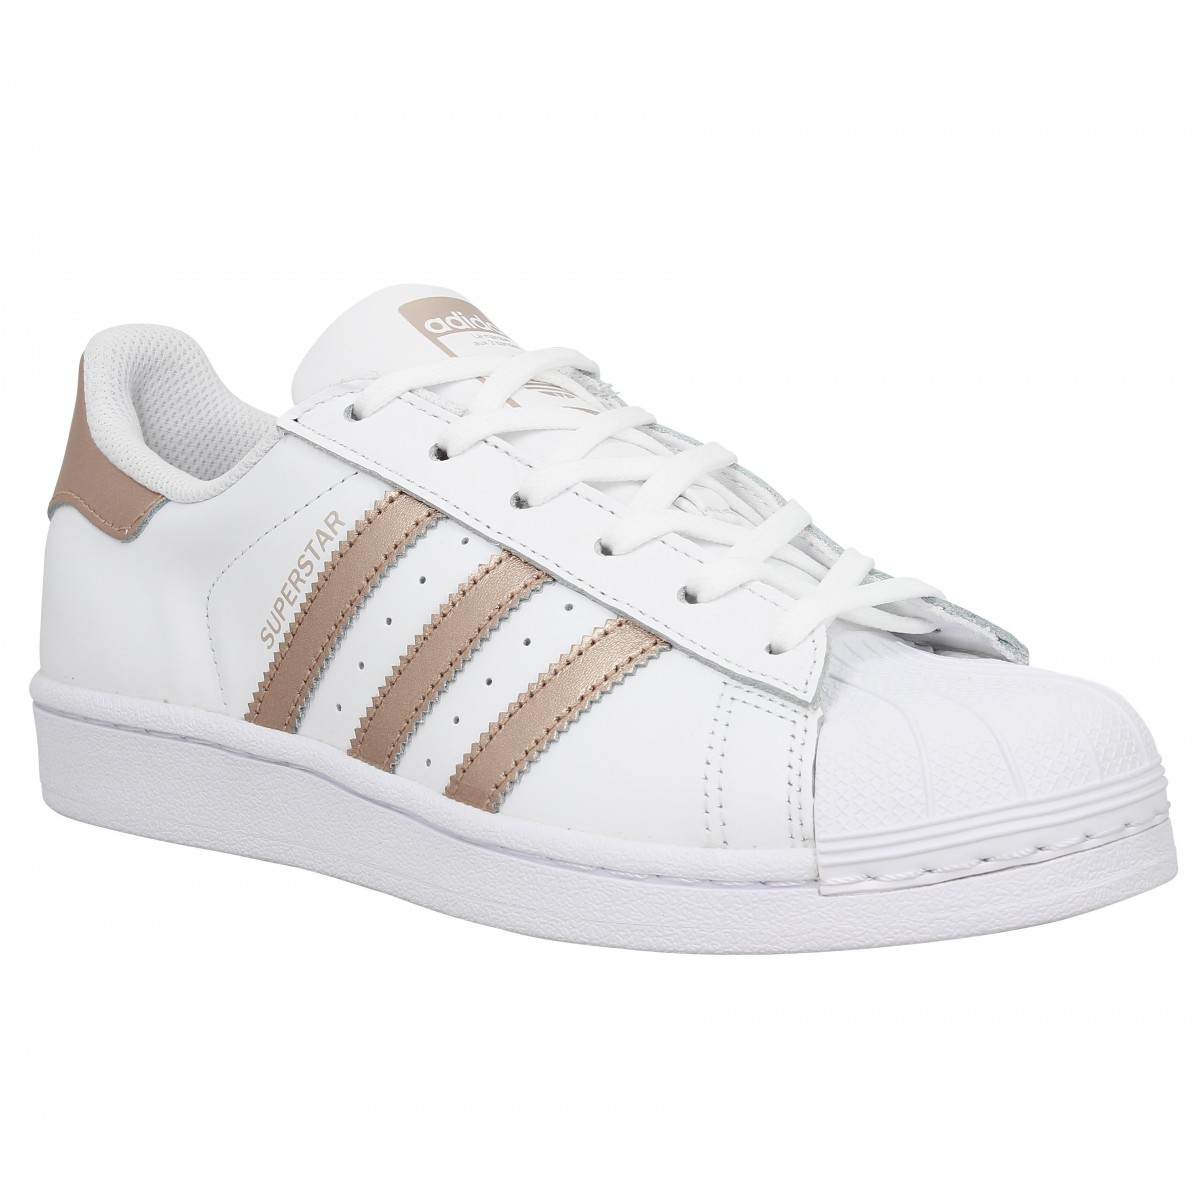 Adidas superstar blanc gold rose femme |